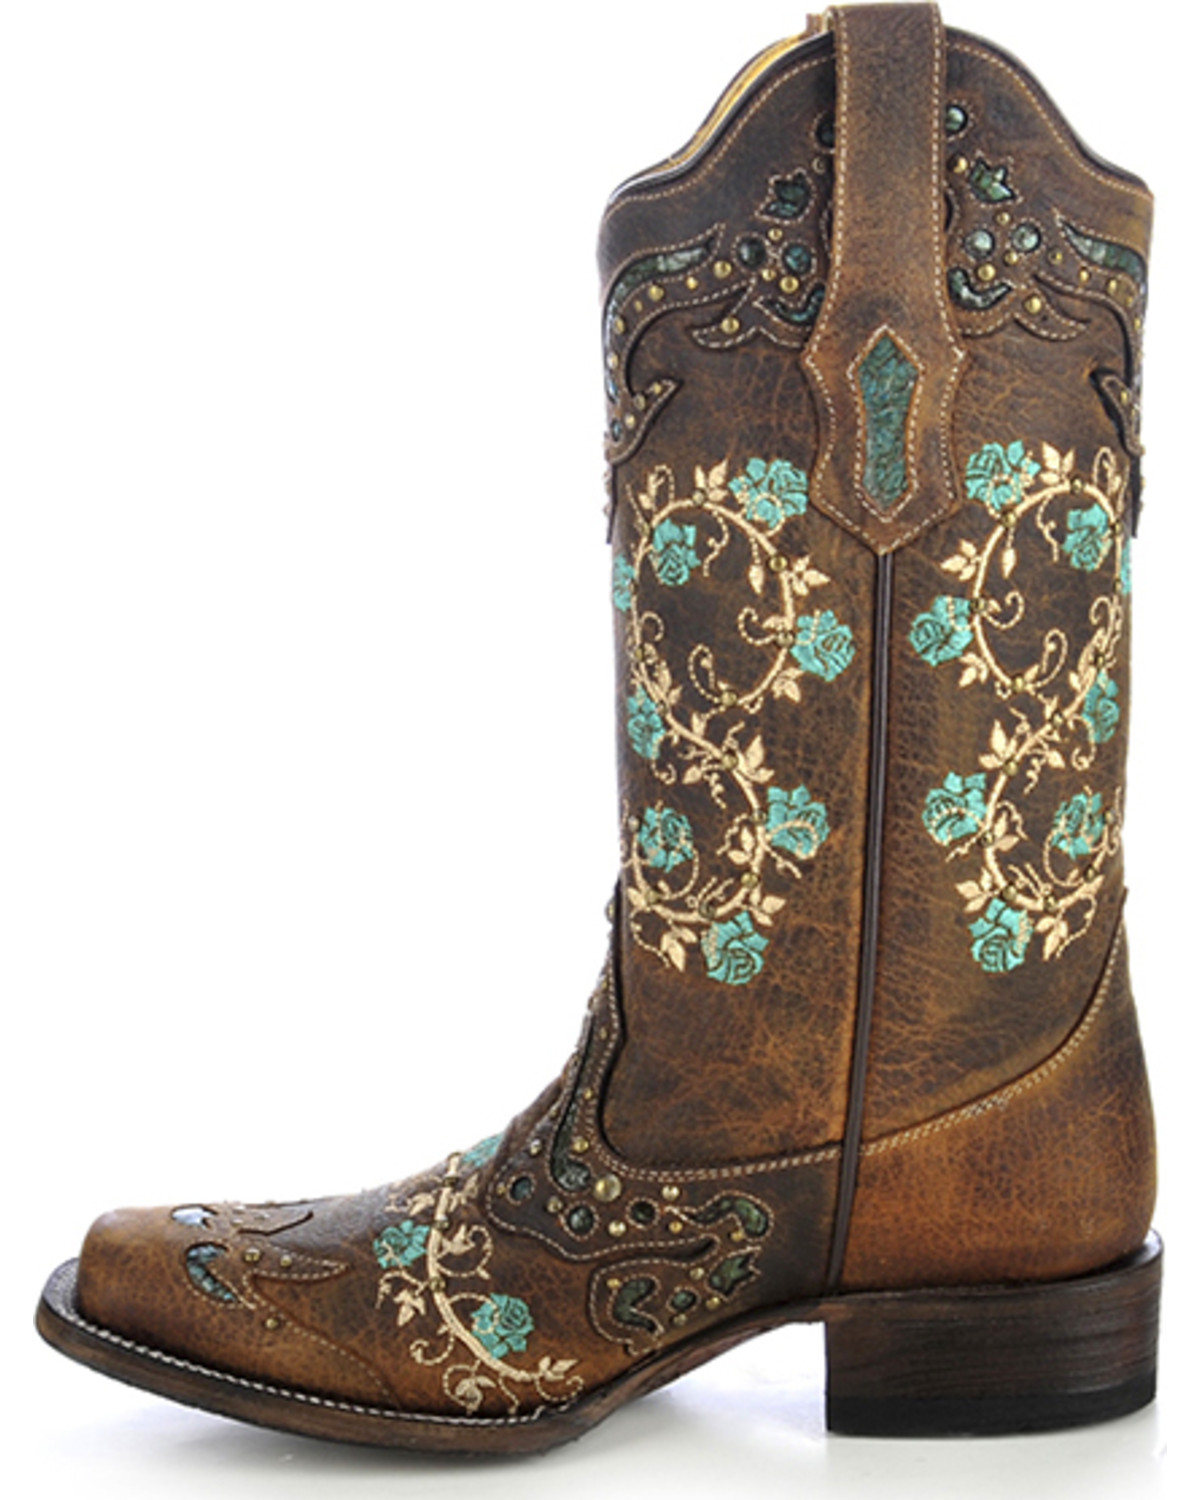 corral women u0026 39 s studded floral embroidery cowgirl boots - square toe